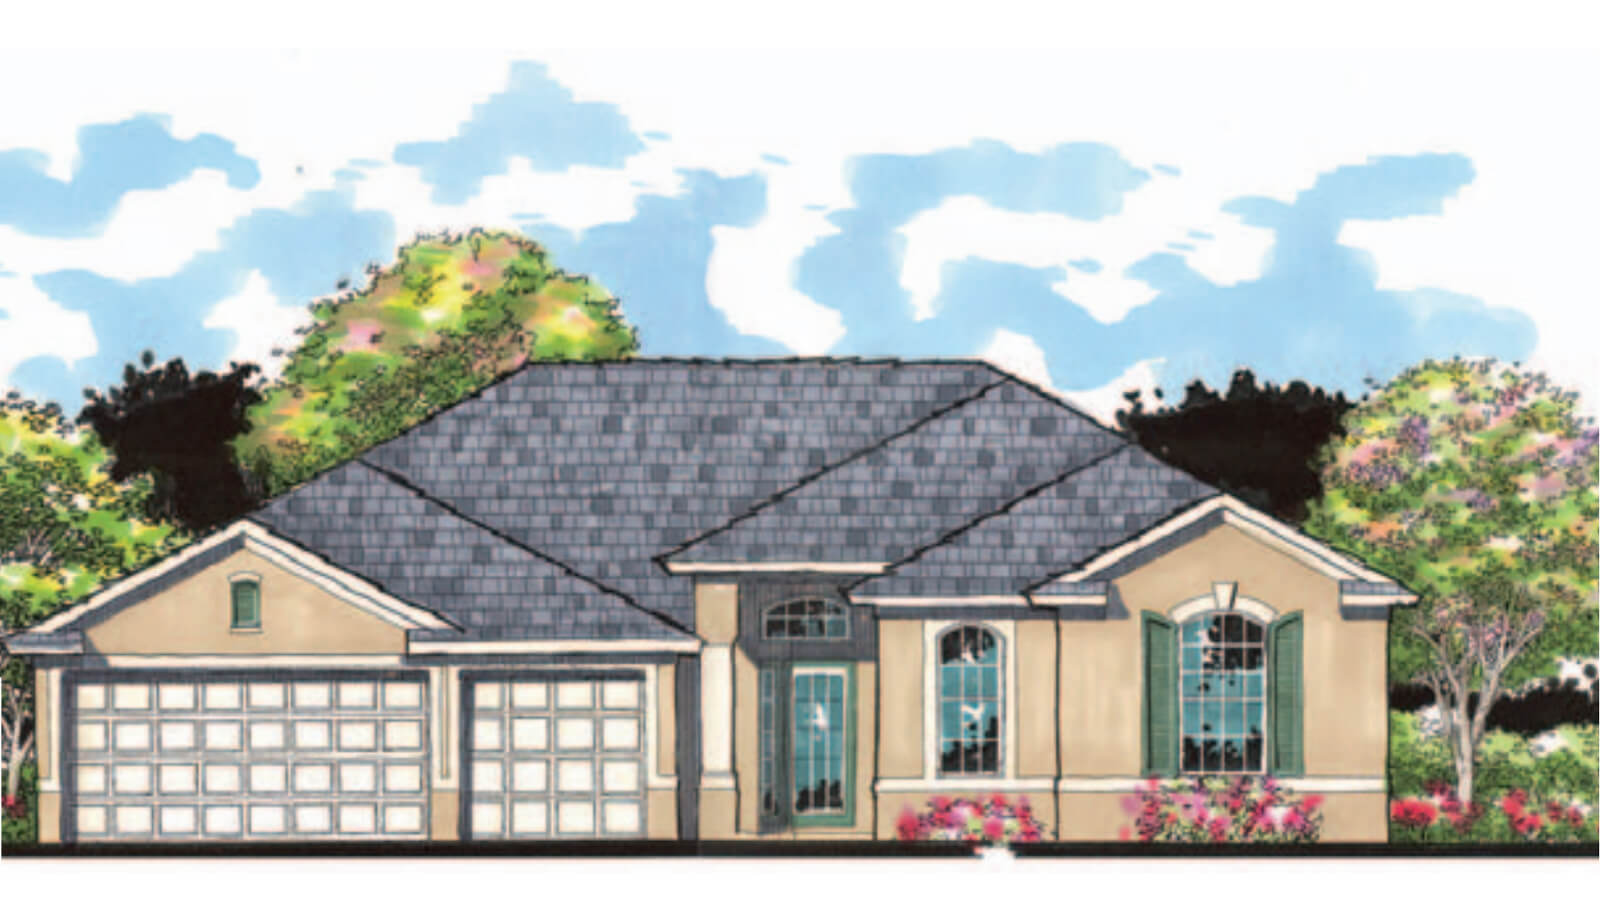 Floor Plans,2,501 SQ FT TO 3,000 SQ FT,1054